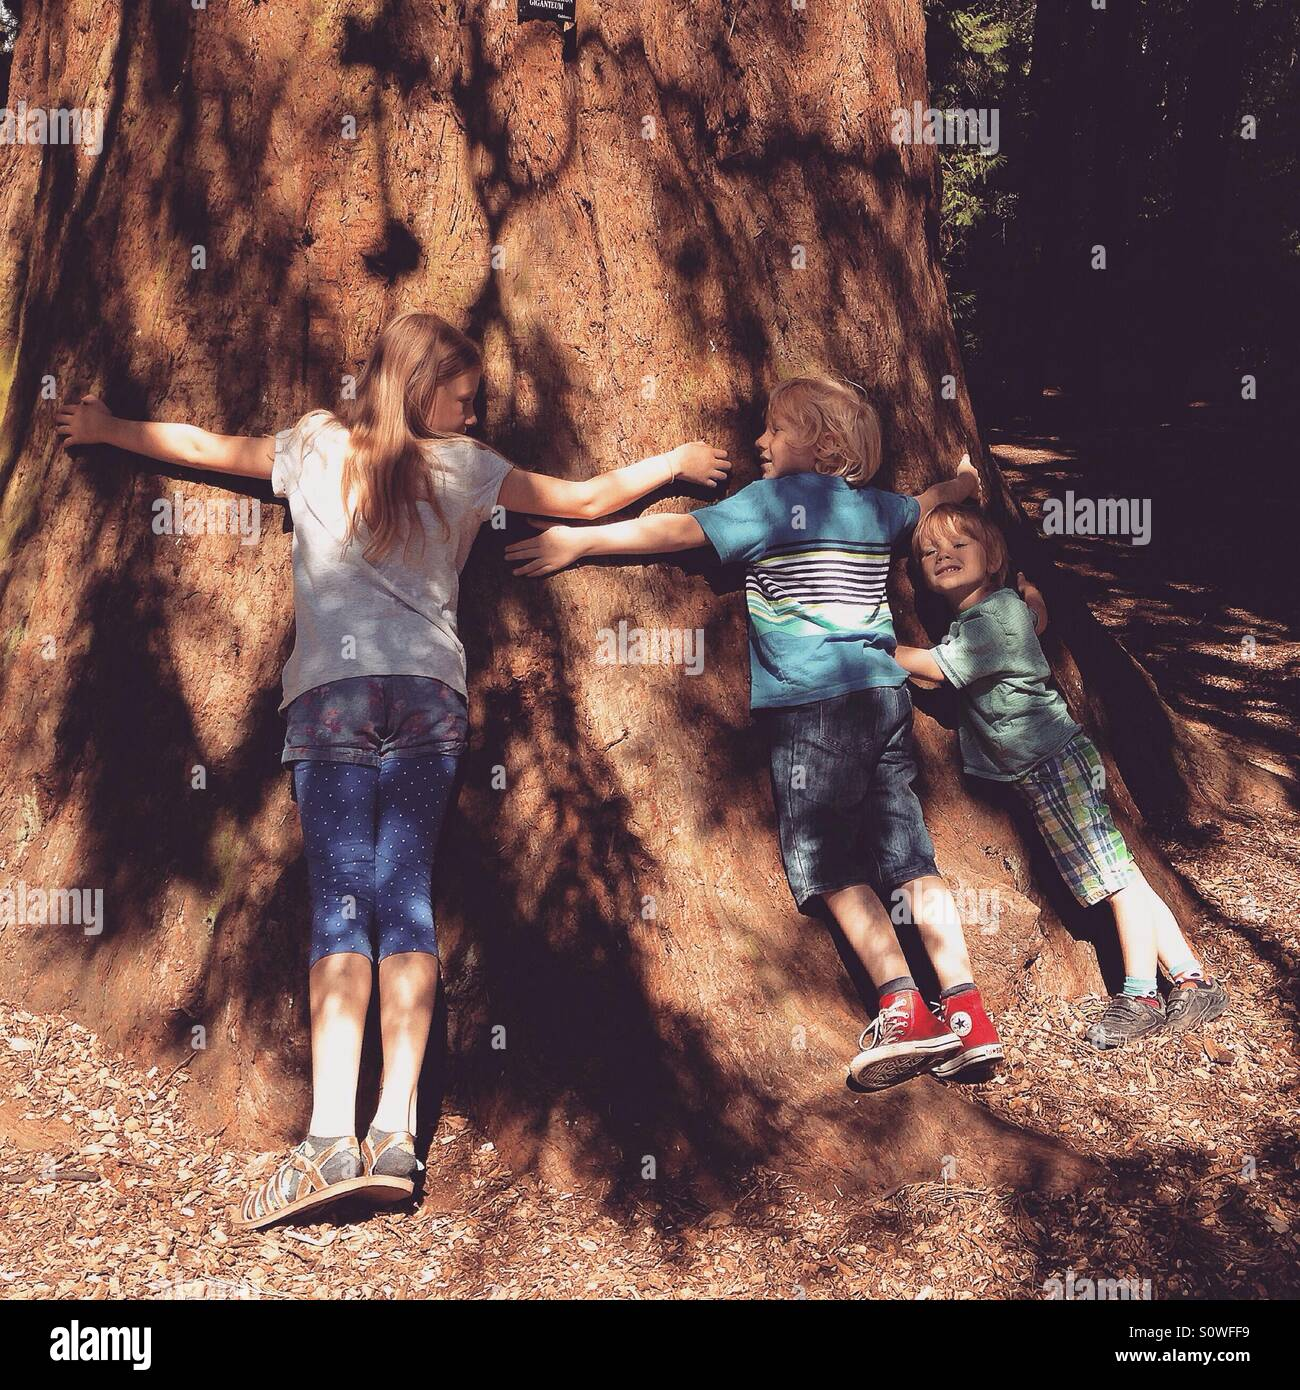 Children hugging a tree - Stock Image